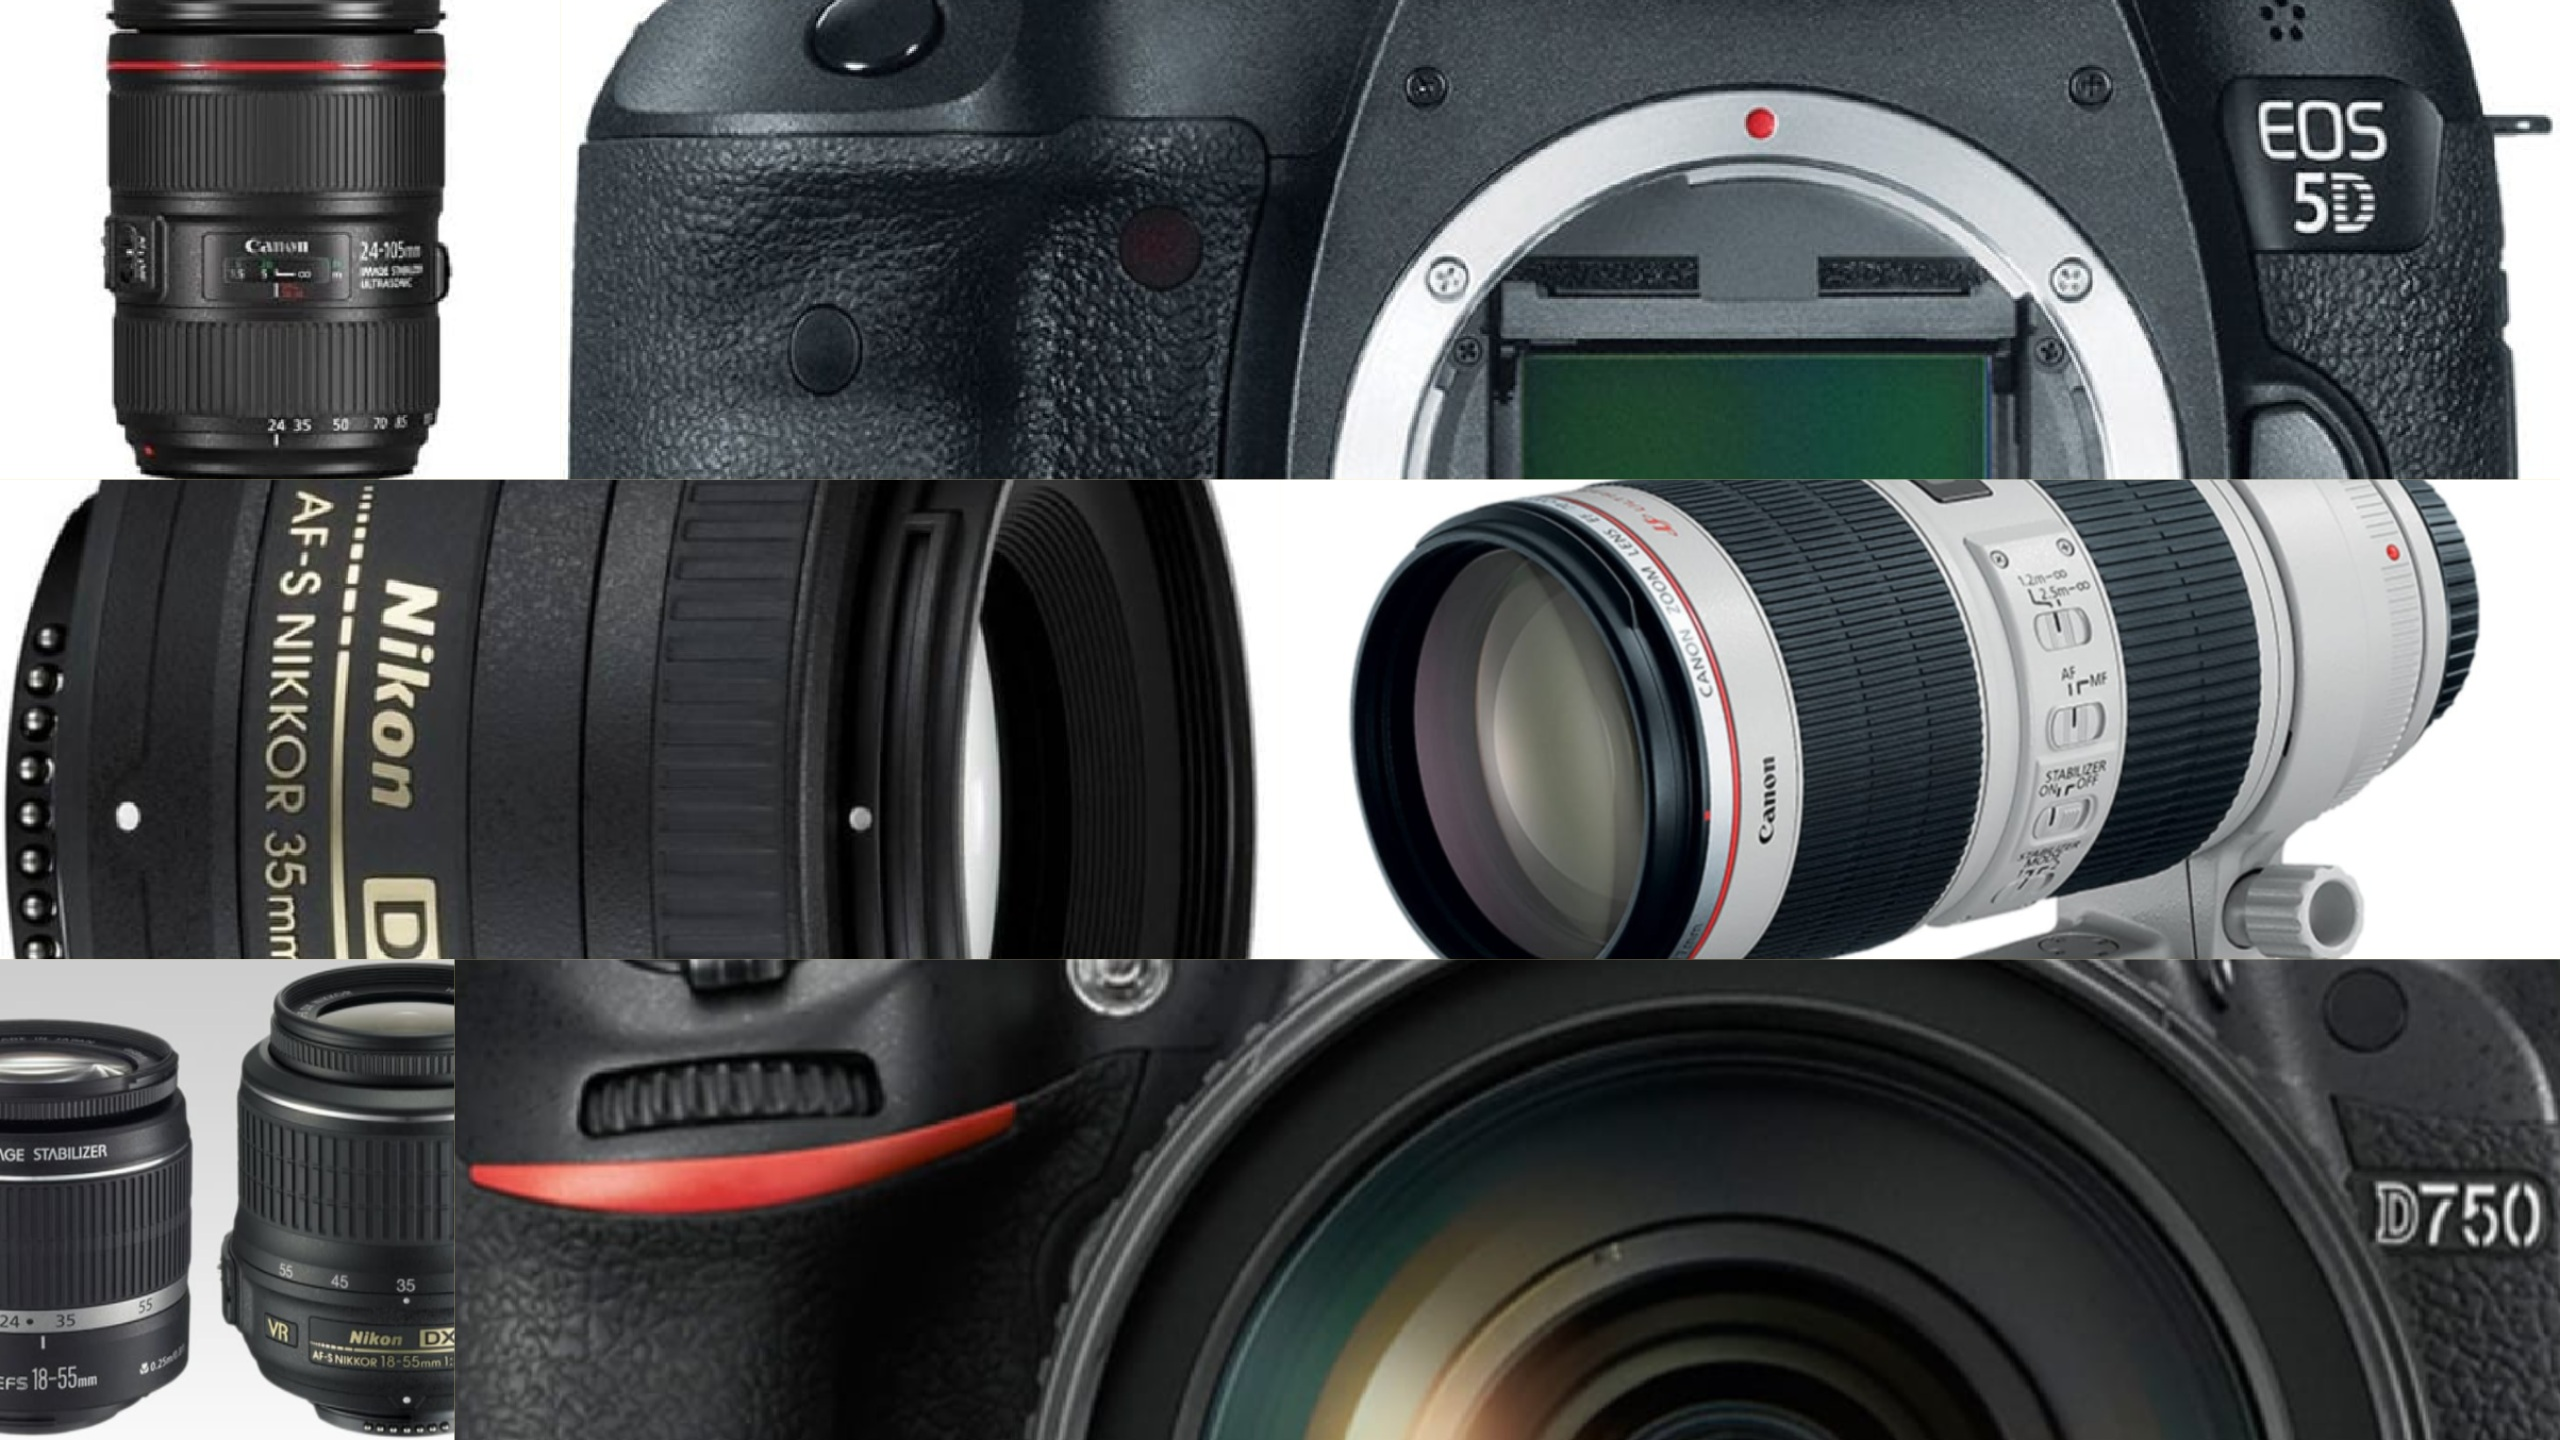 Photofocus | What Are The Most Popular Used Cameras and Lenses?